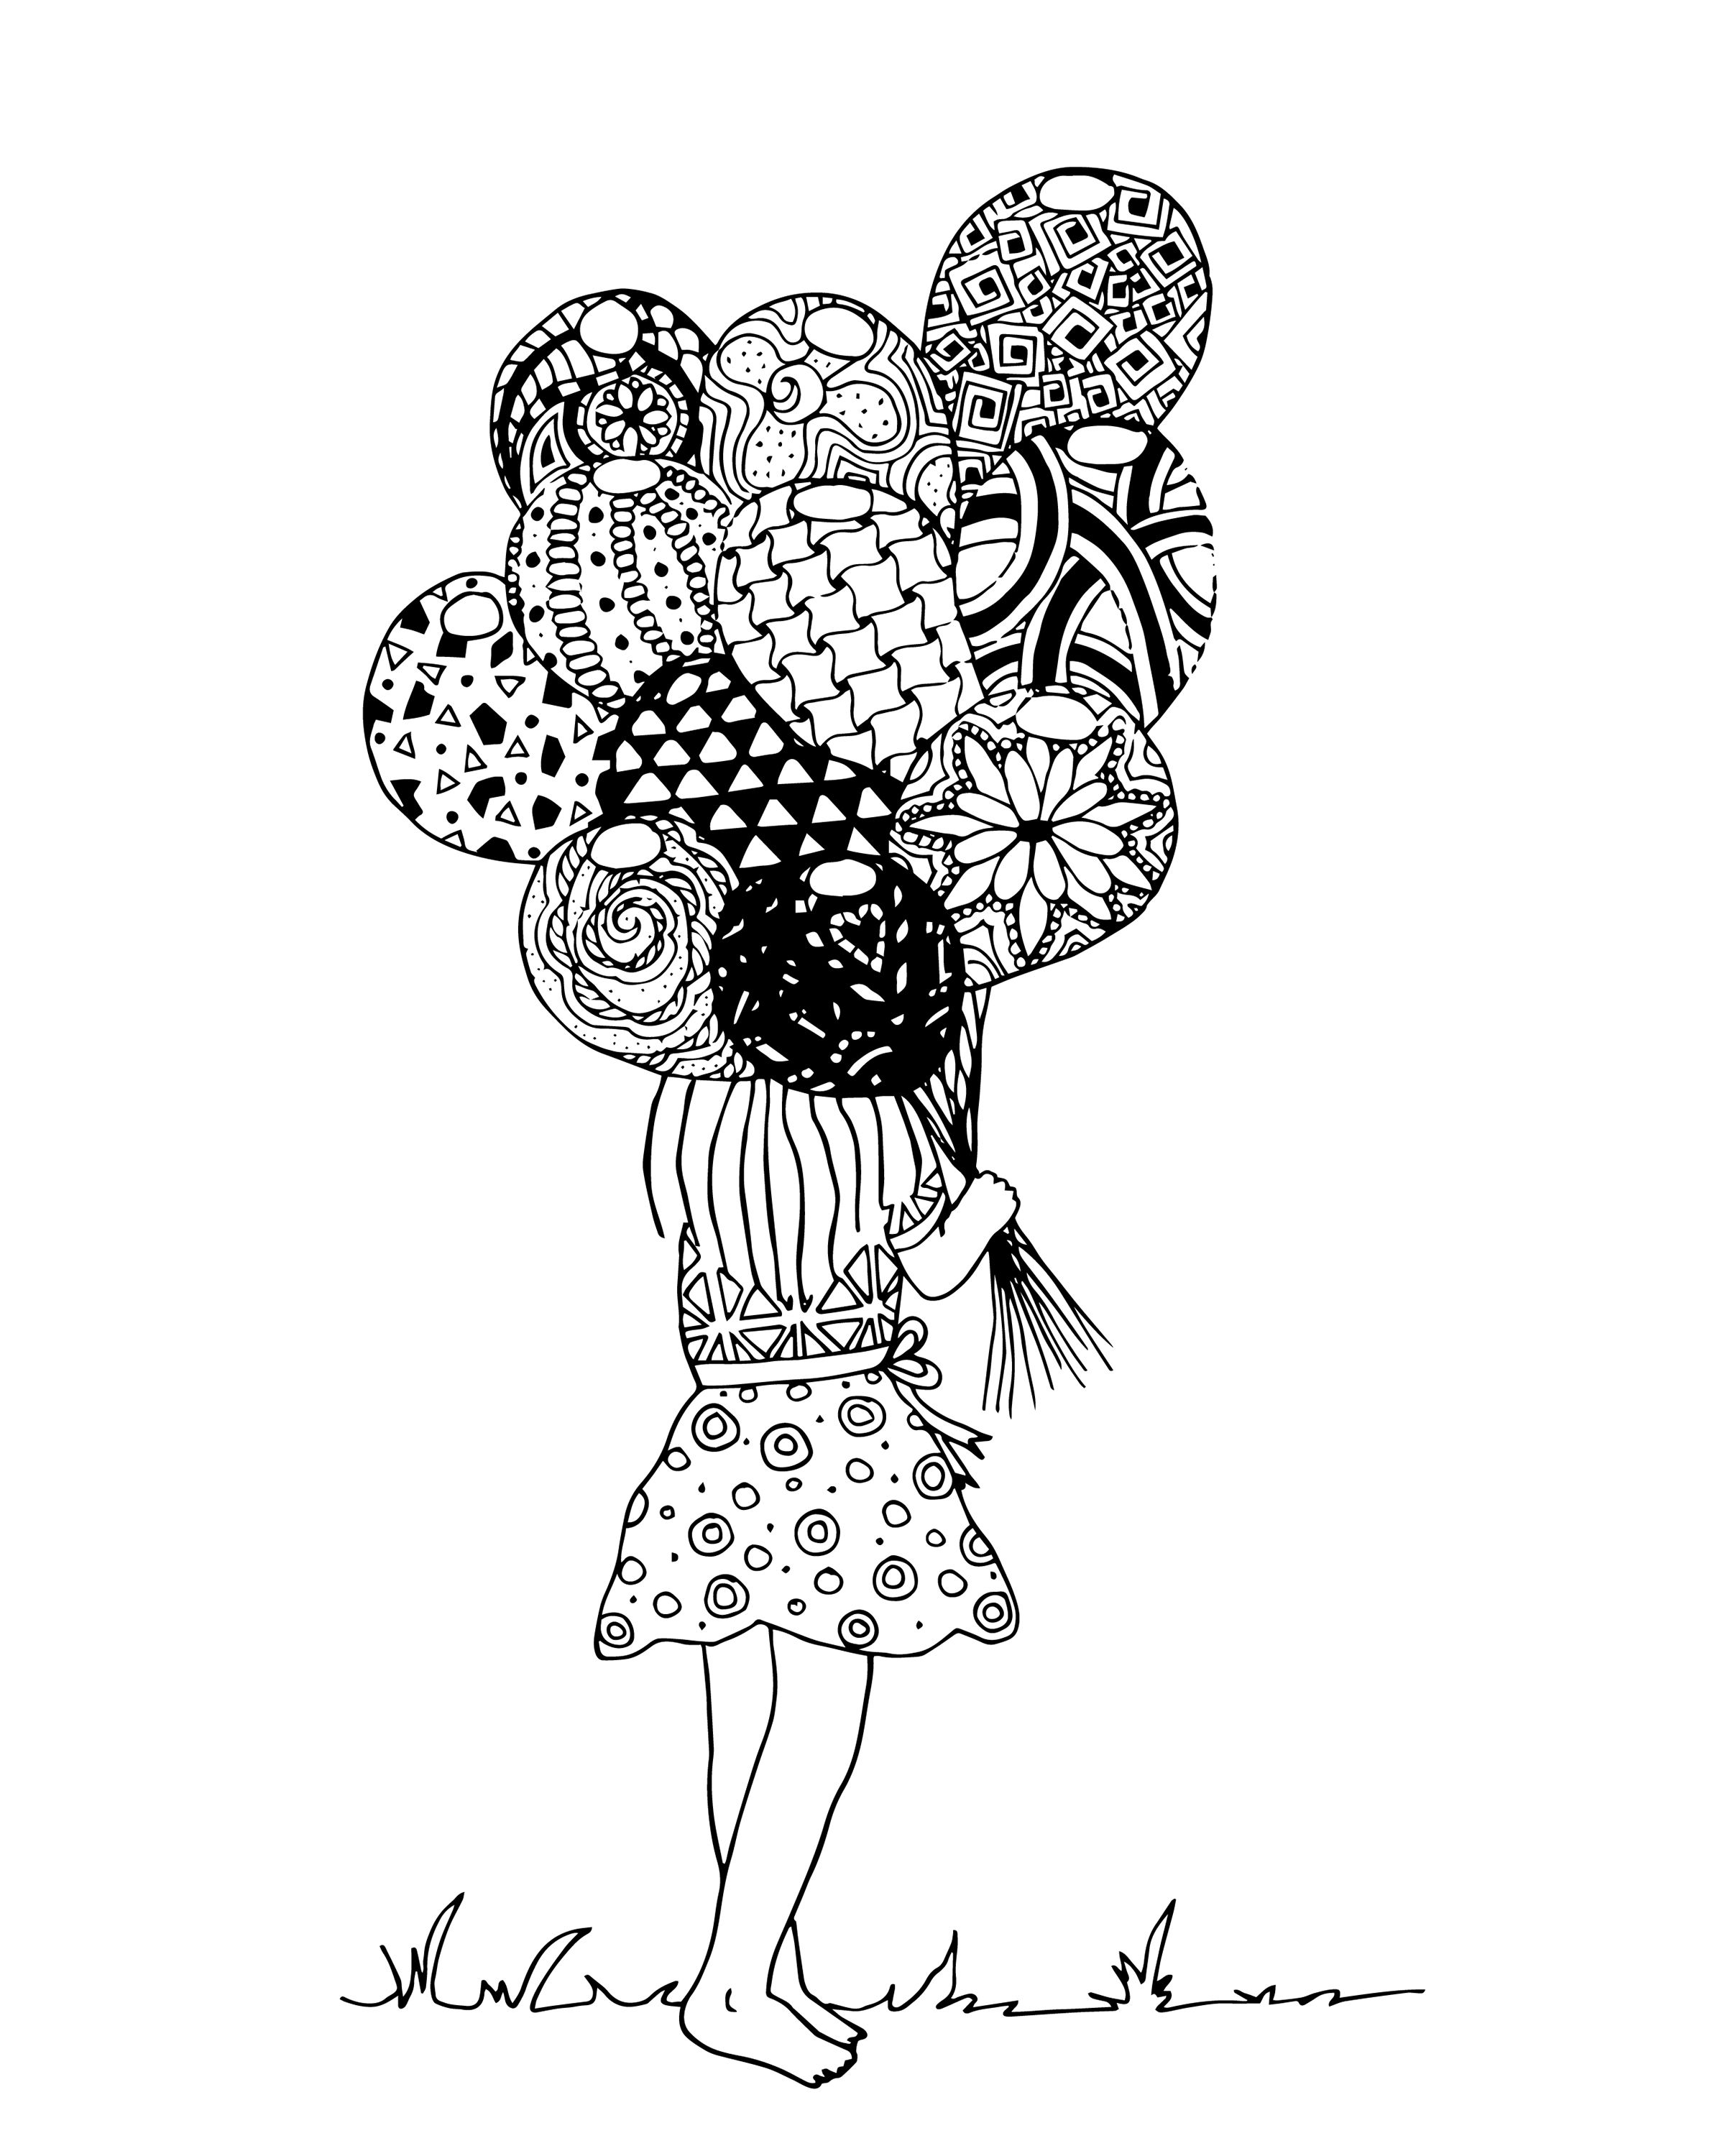 FREE downloadable coloring page